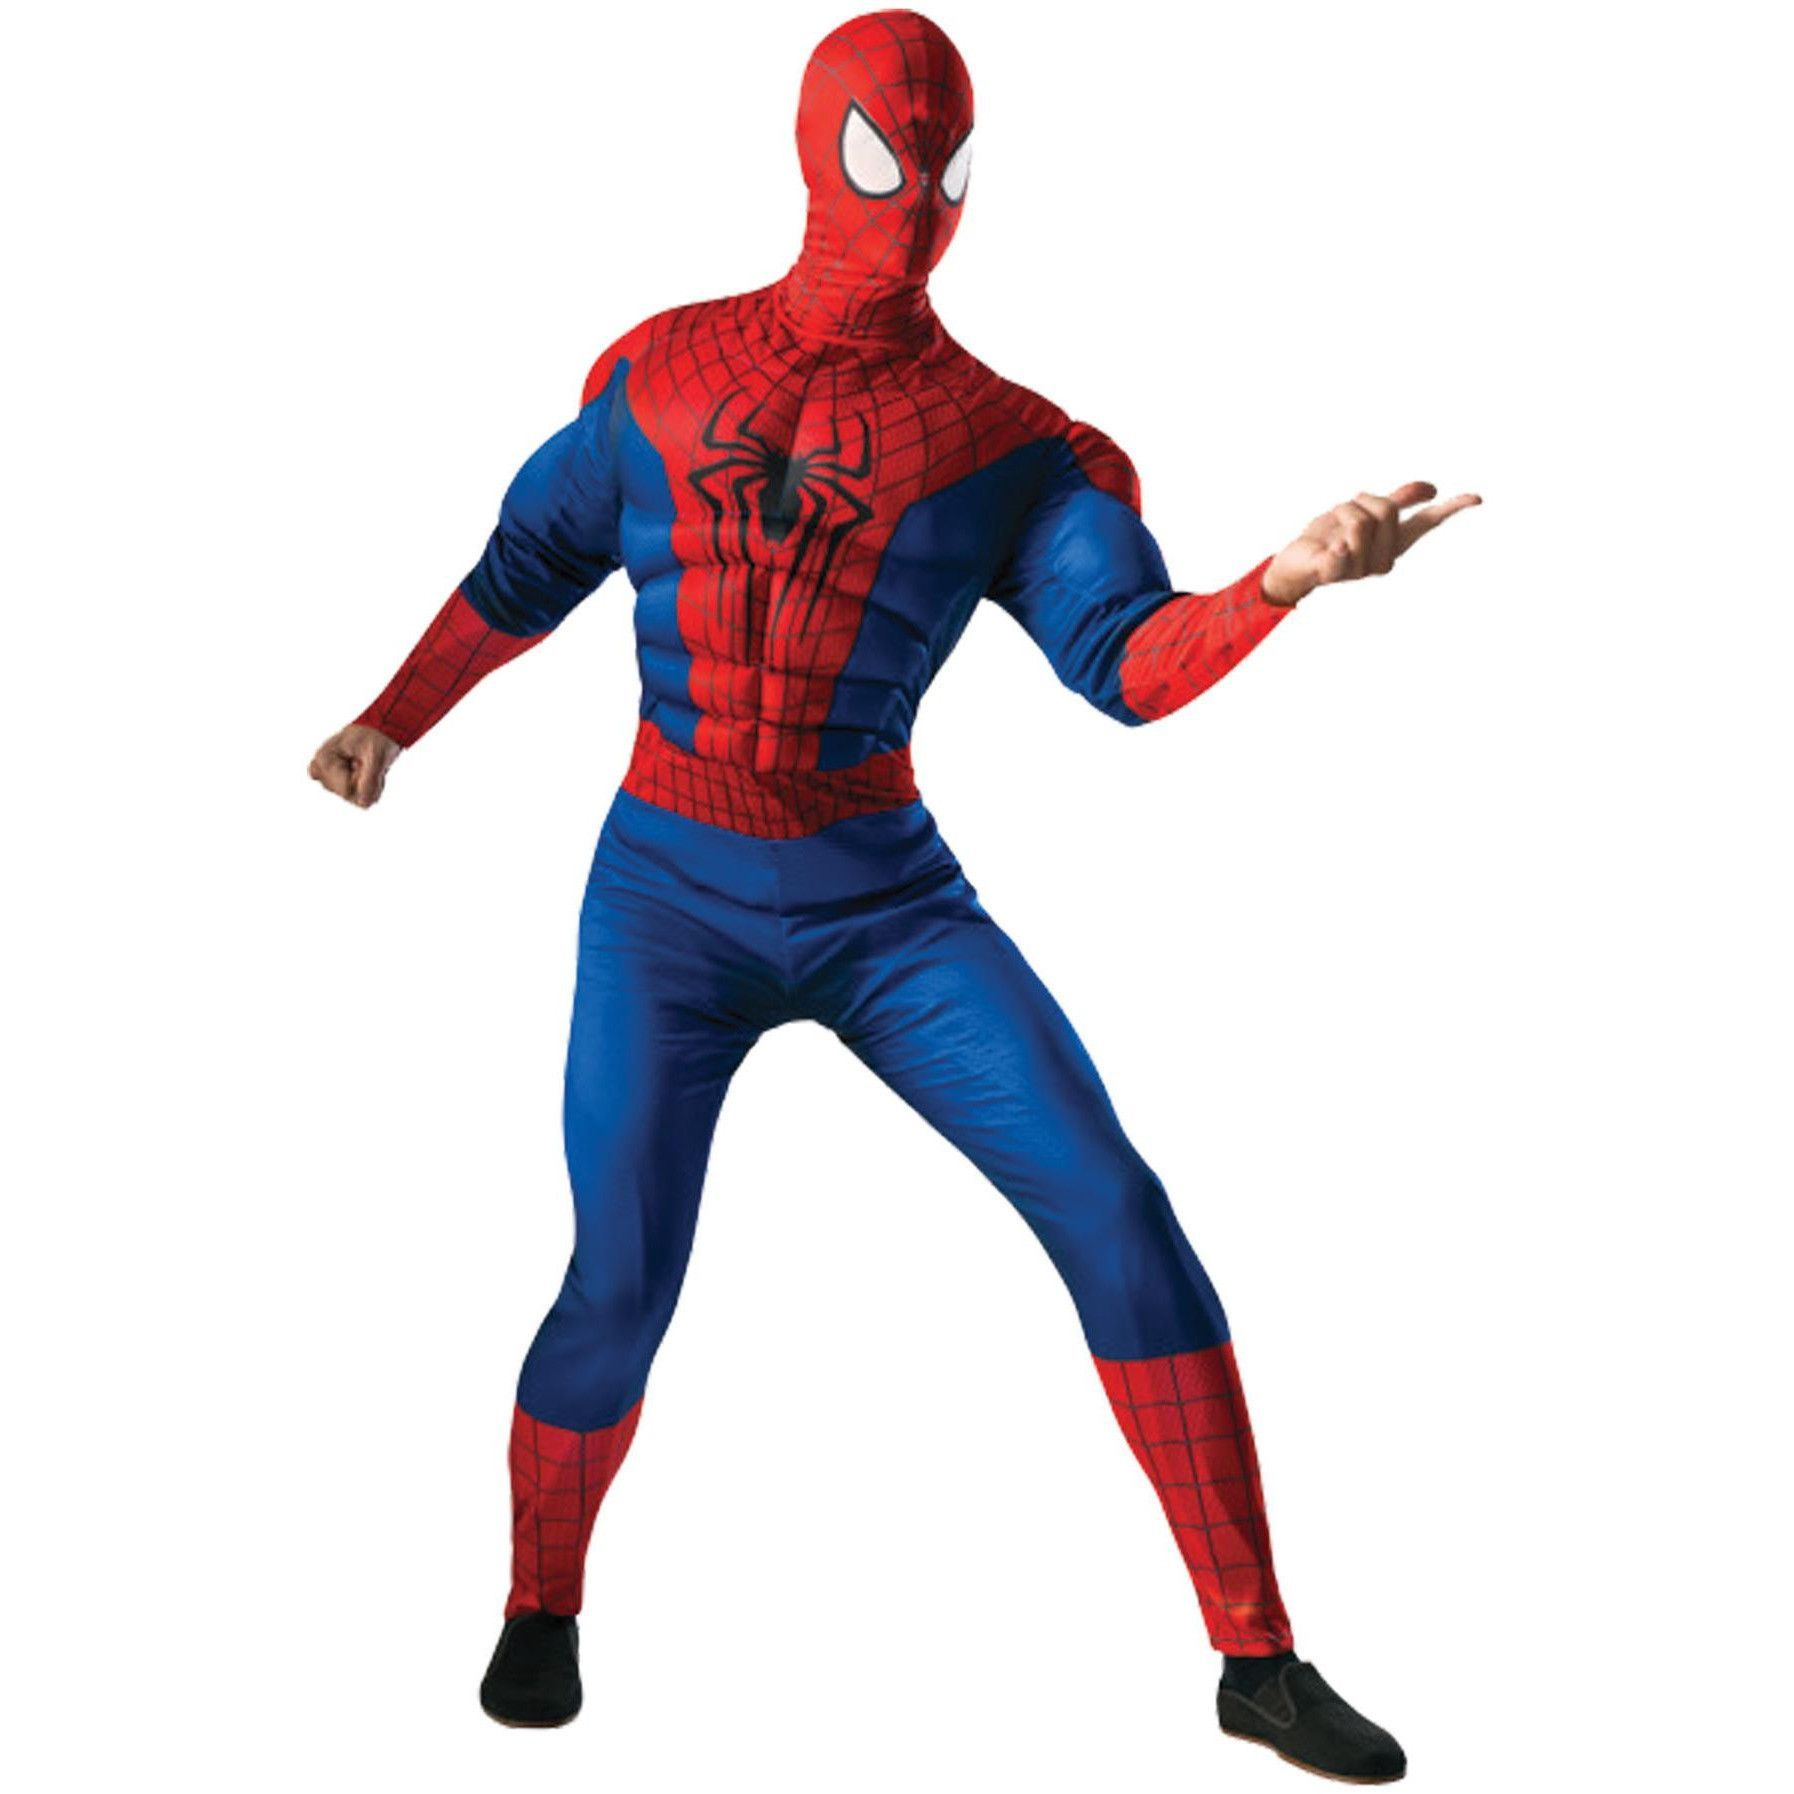 Description This Spider-Man costume jumpsuit will make you look like Spider-Man himself. Includes Spider-Man printed muscle chest jumpsuit with padded  sc 1 st  Pinterest & Spiderman Adult Std | Muscle building | Pinterest | Muscle ...